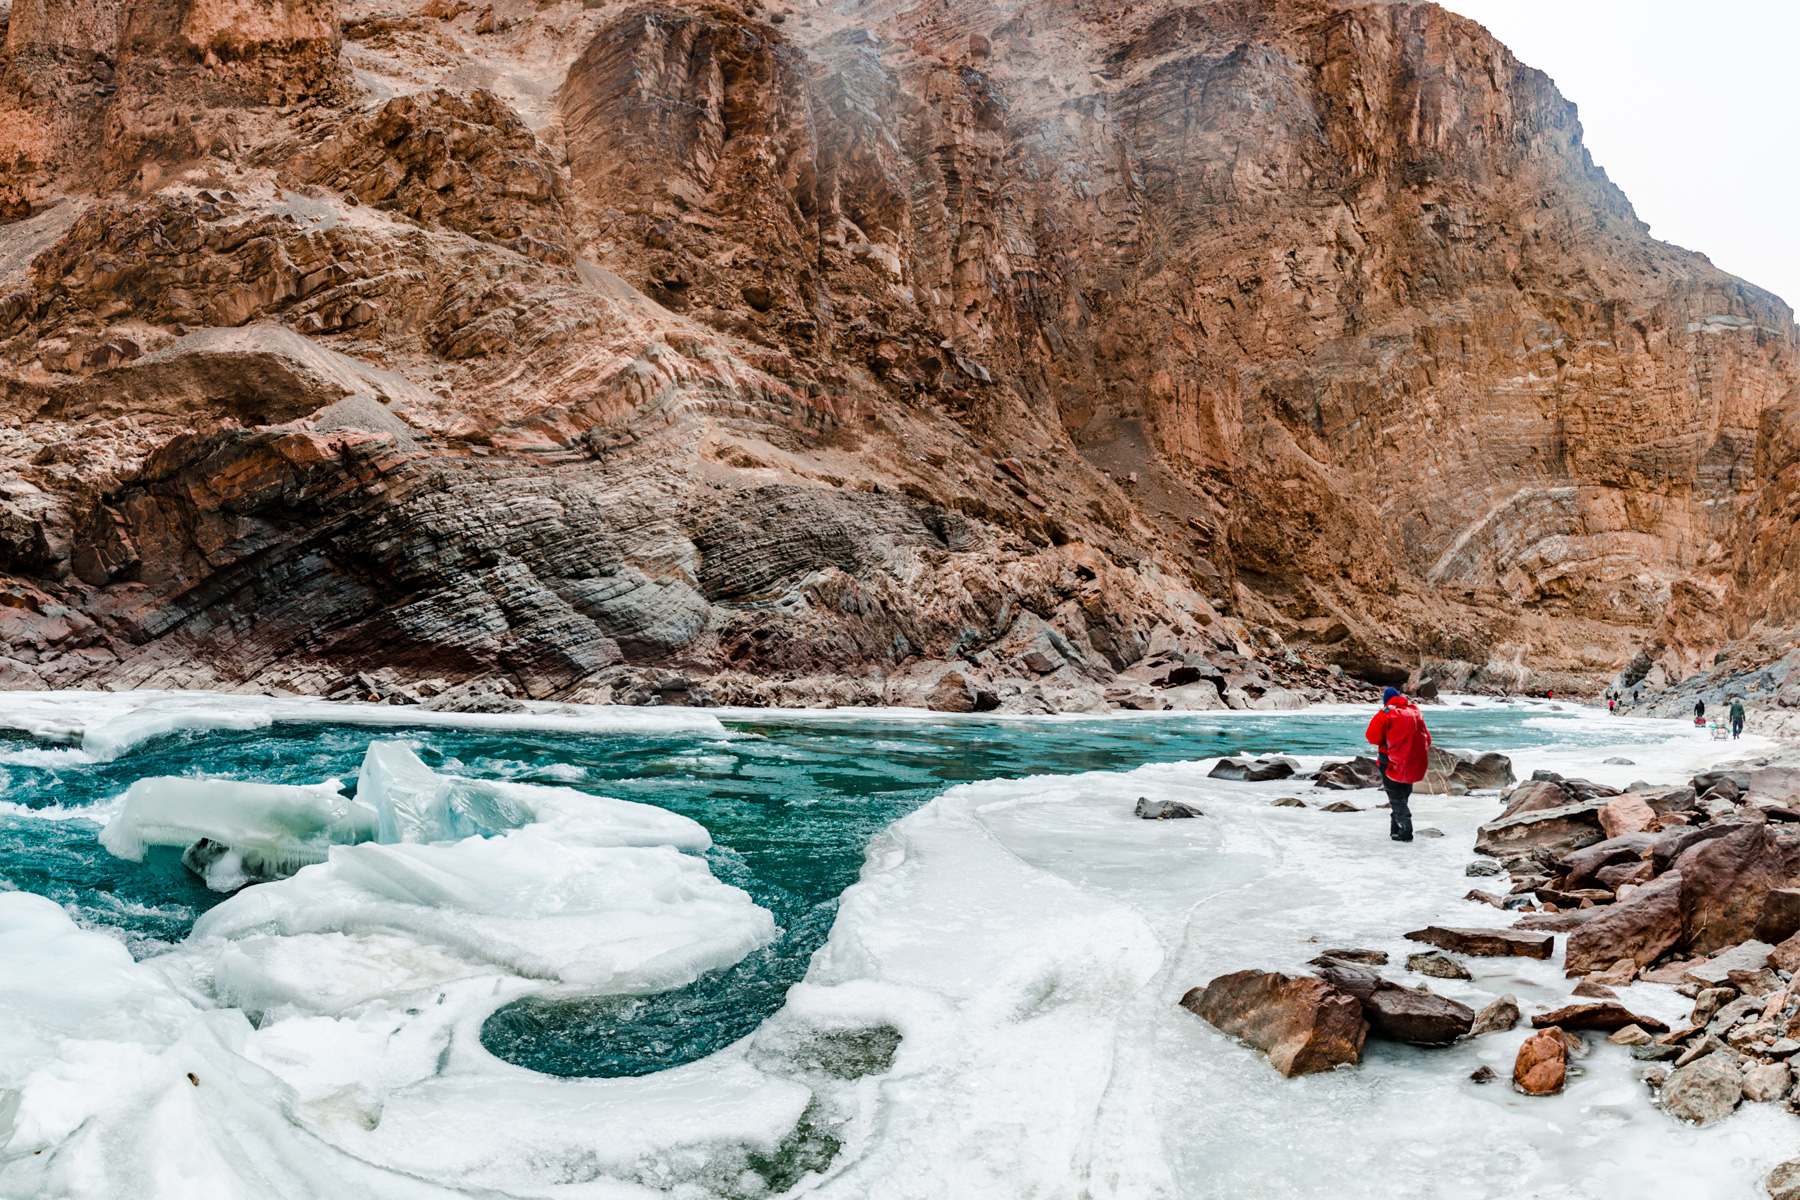 Ladakh: an unusual holiday destination in India